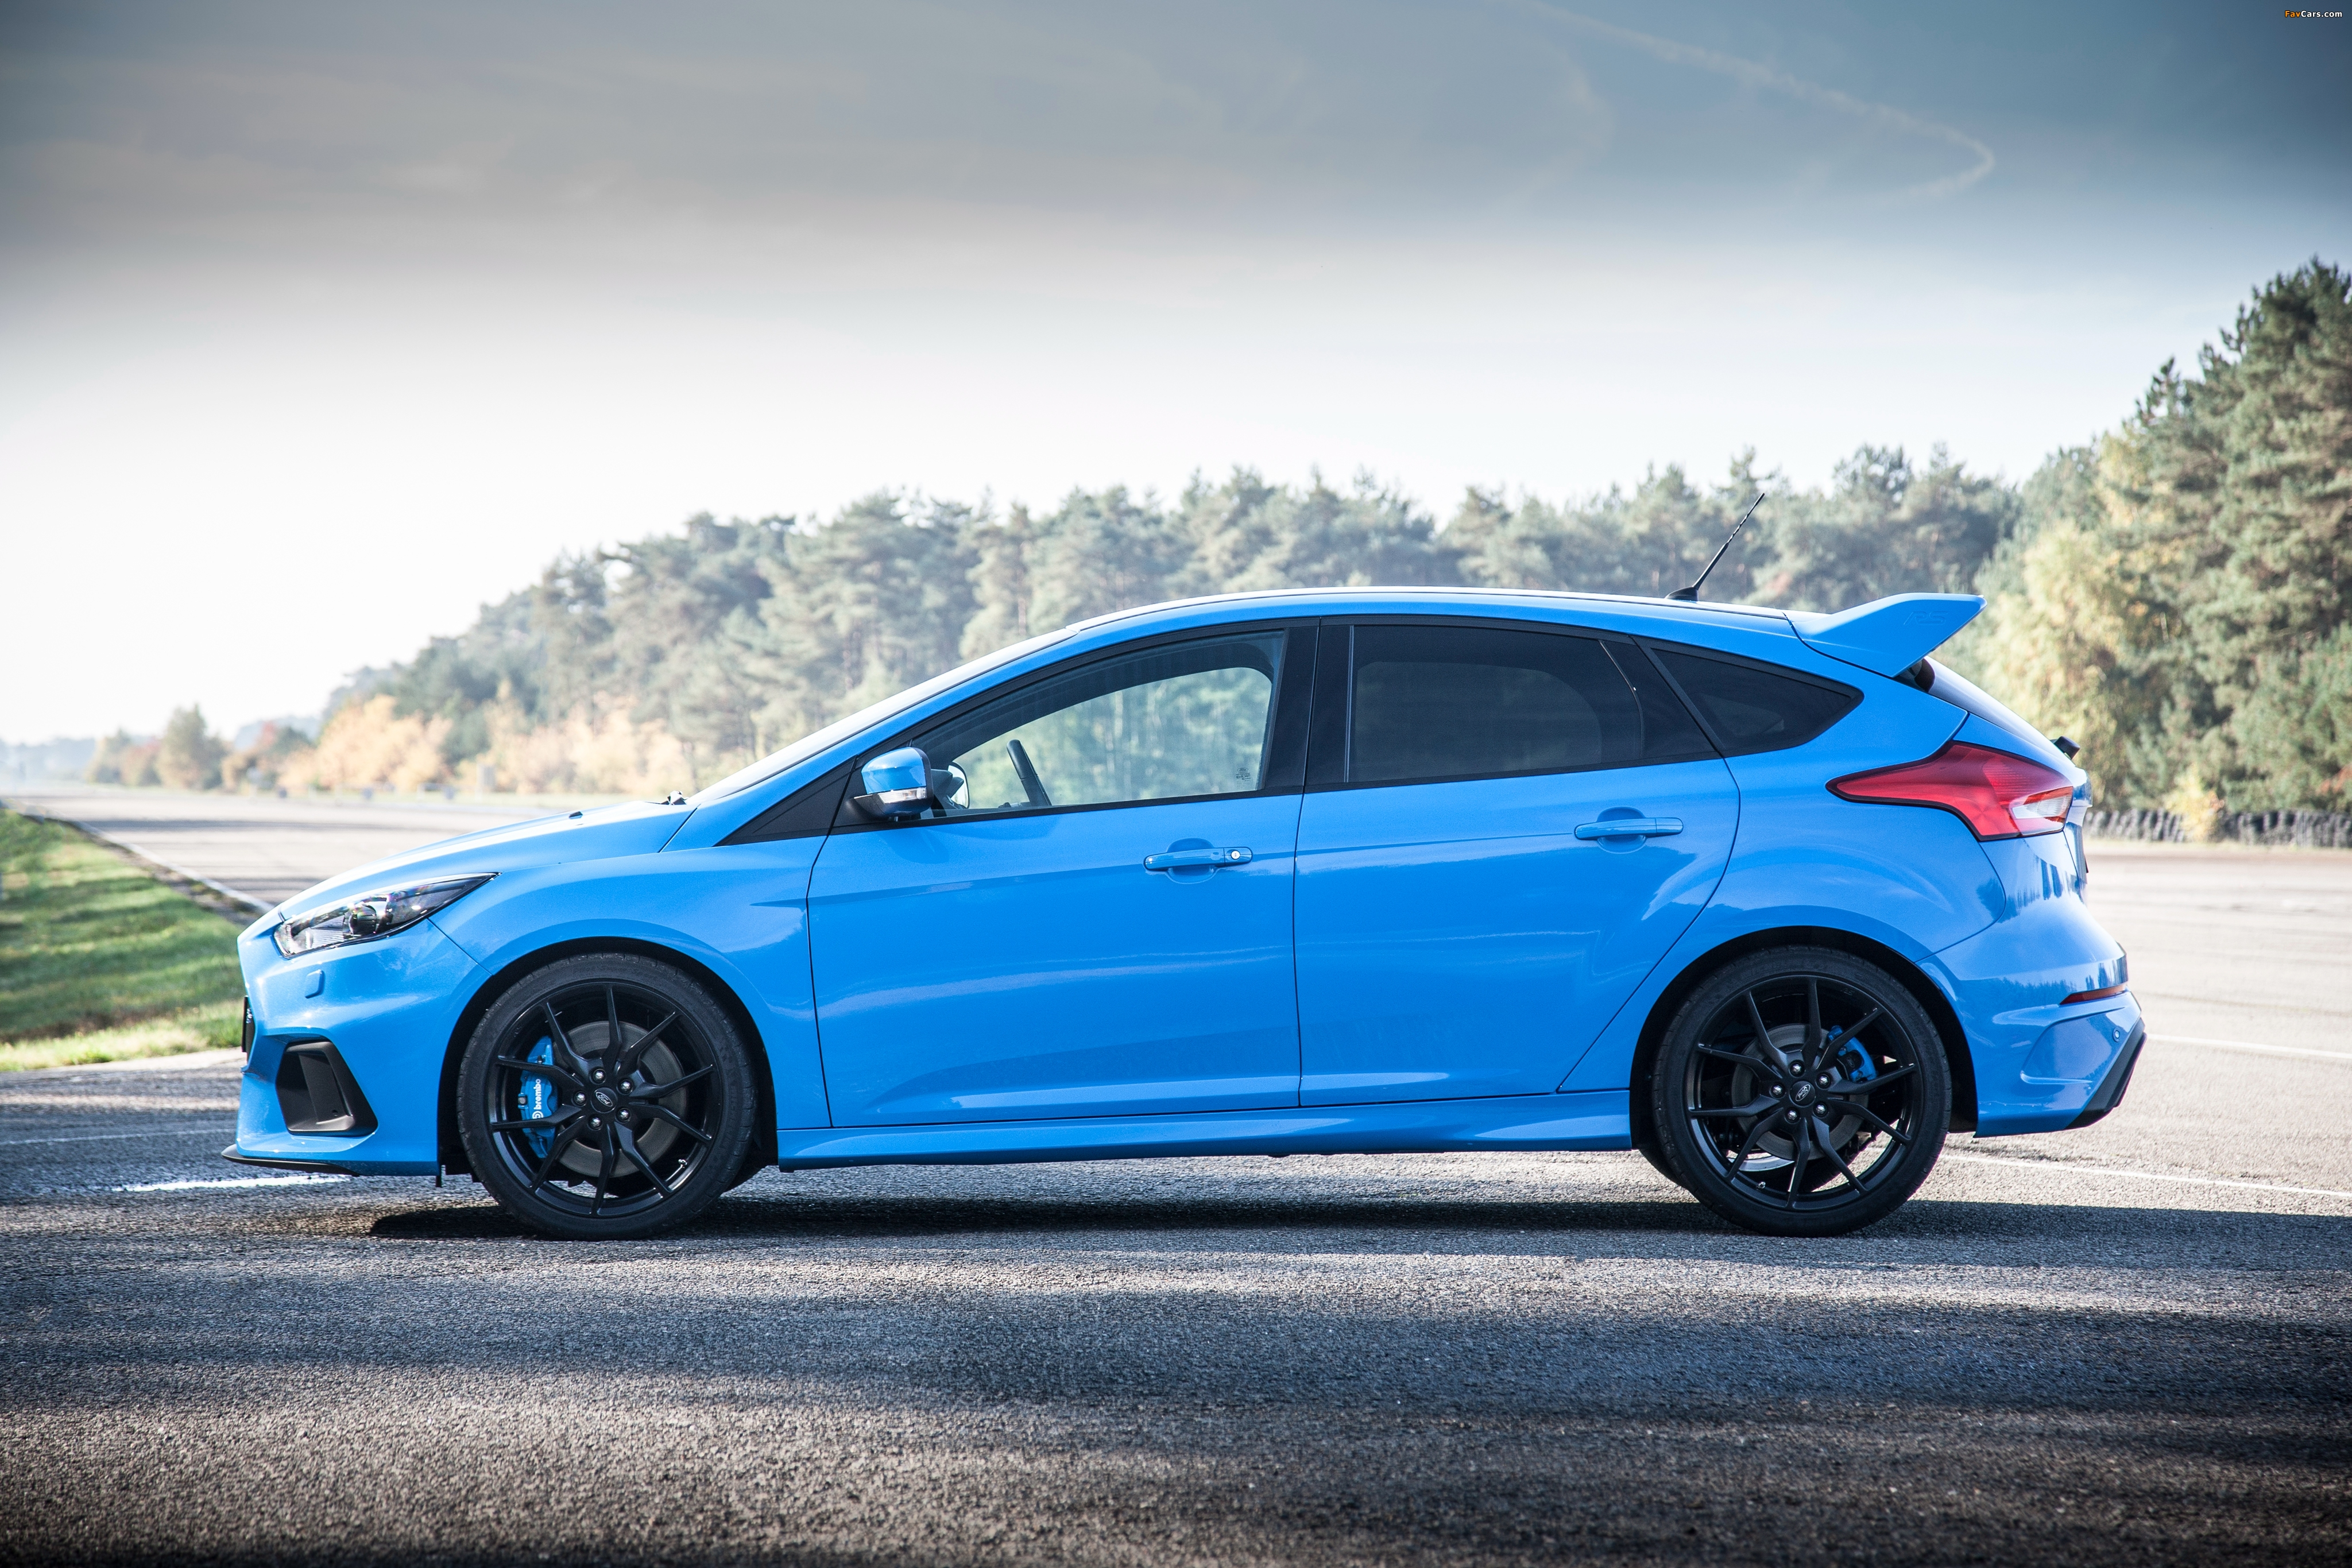 Ford Focus Rs Dyb 2015 Wallpapers 4096x2731